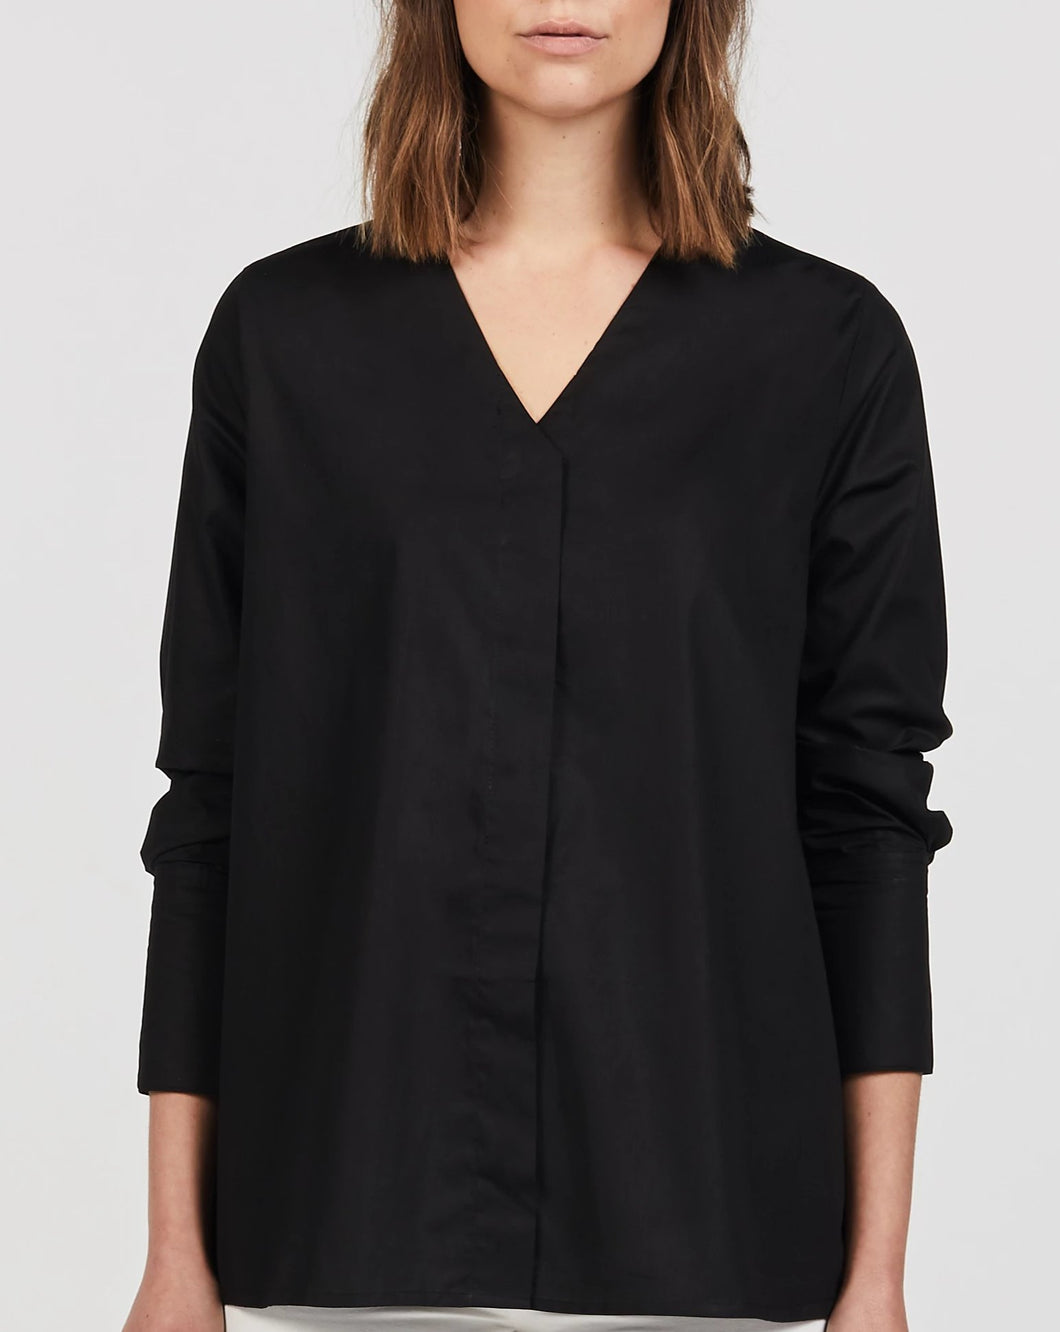 STELLA MATERNITY AND NURSING COTTON TOP BLACK FRONT